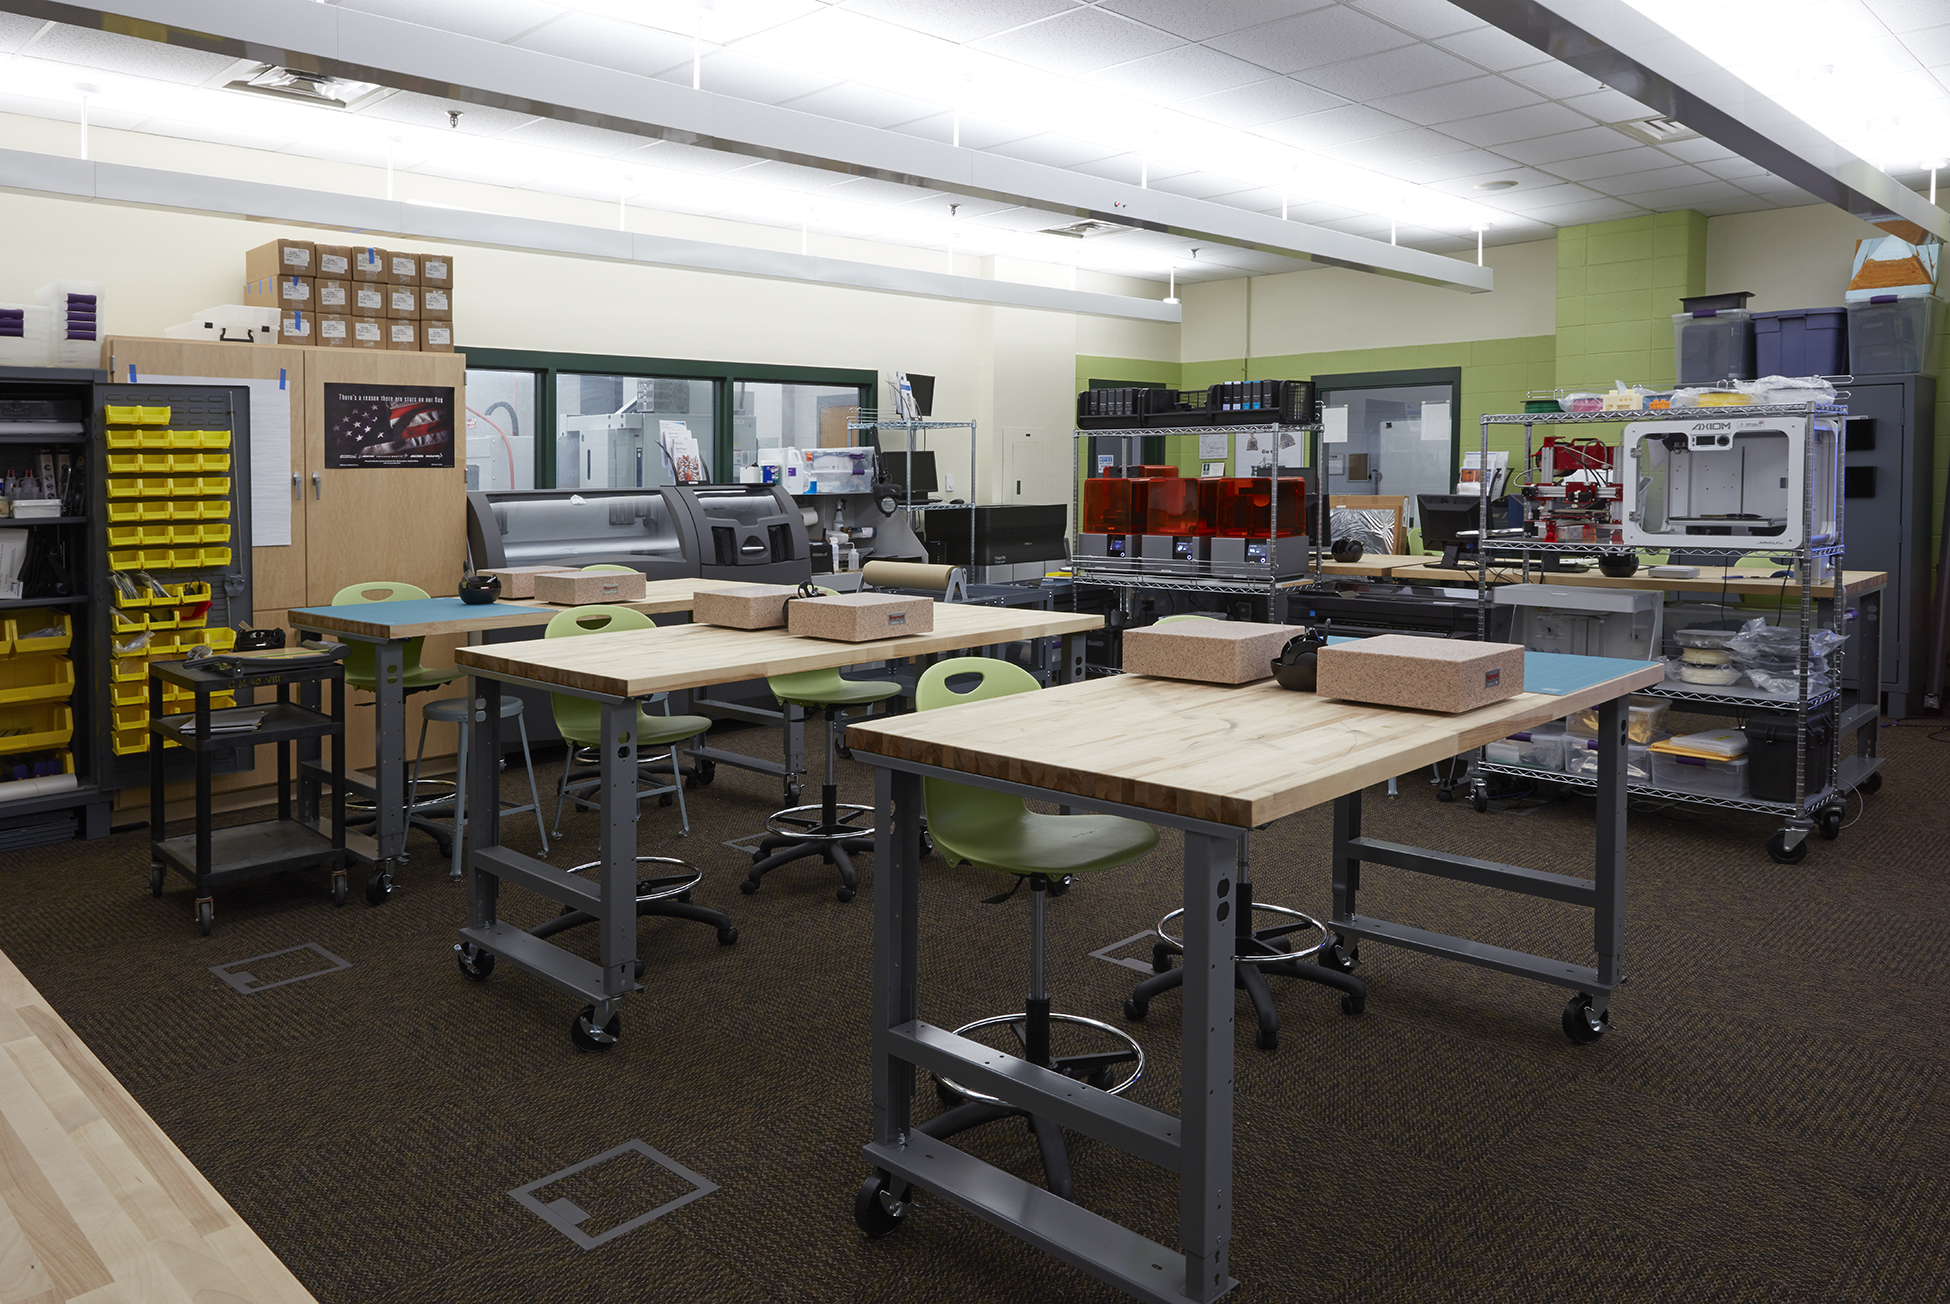 A renovated fab lab that includes moveable benchtops, 3D printers, and supply storage units.